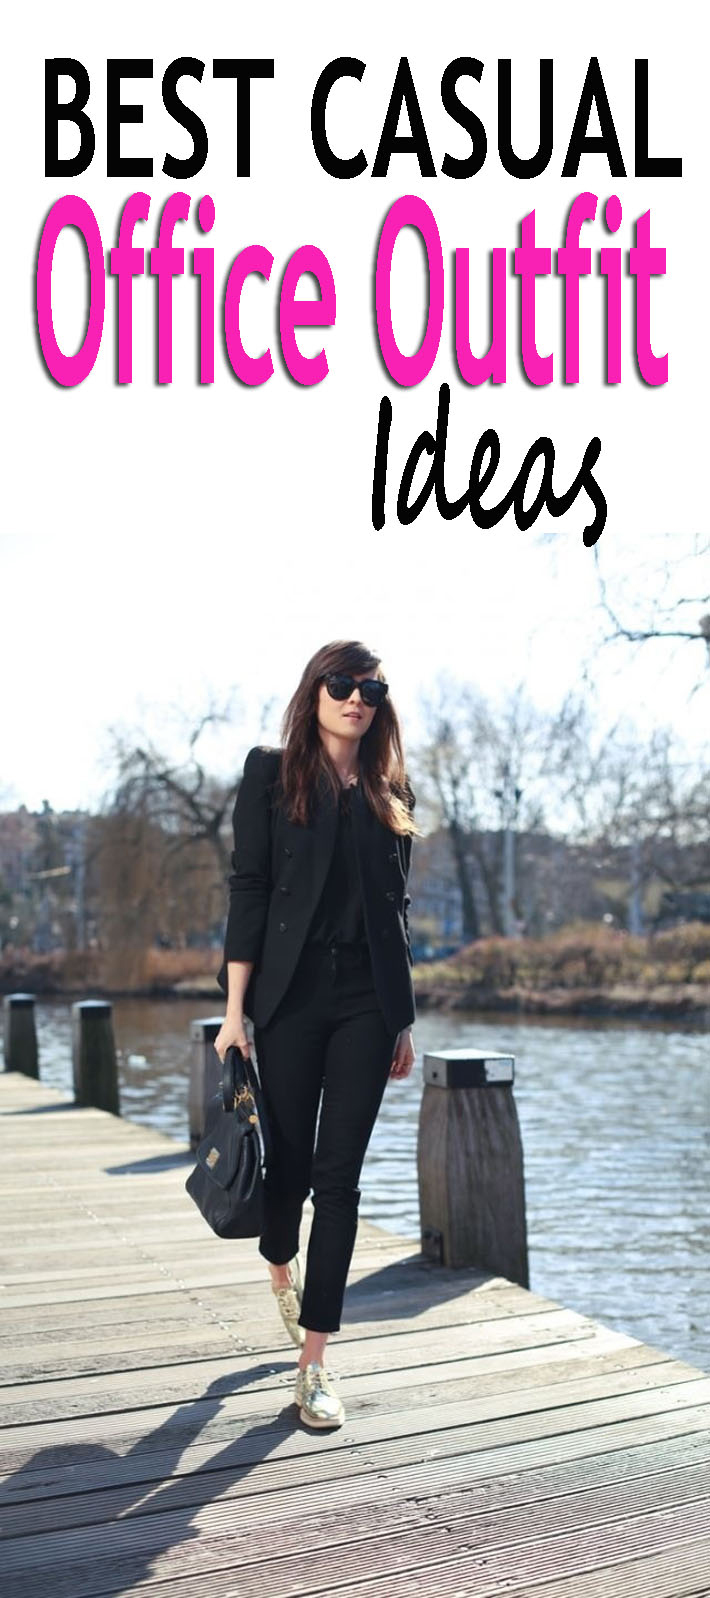 Best Casual Office Outfit Ideas